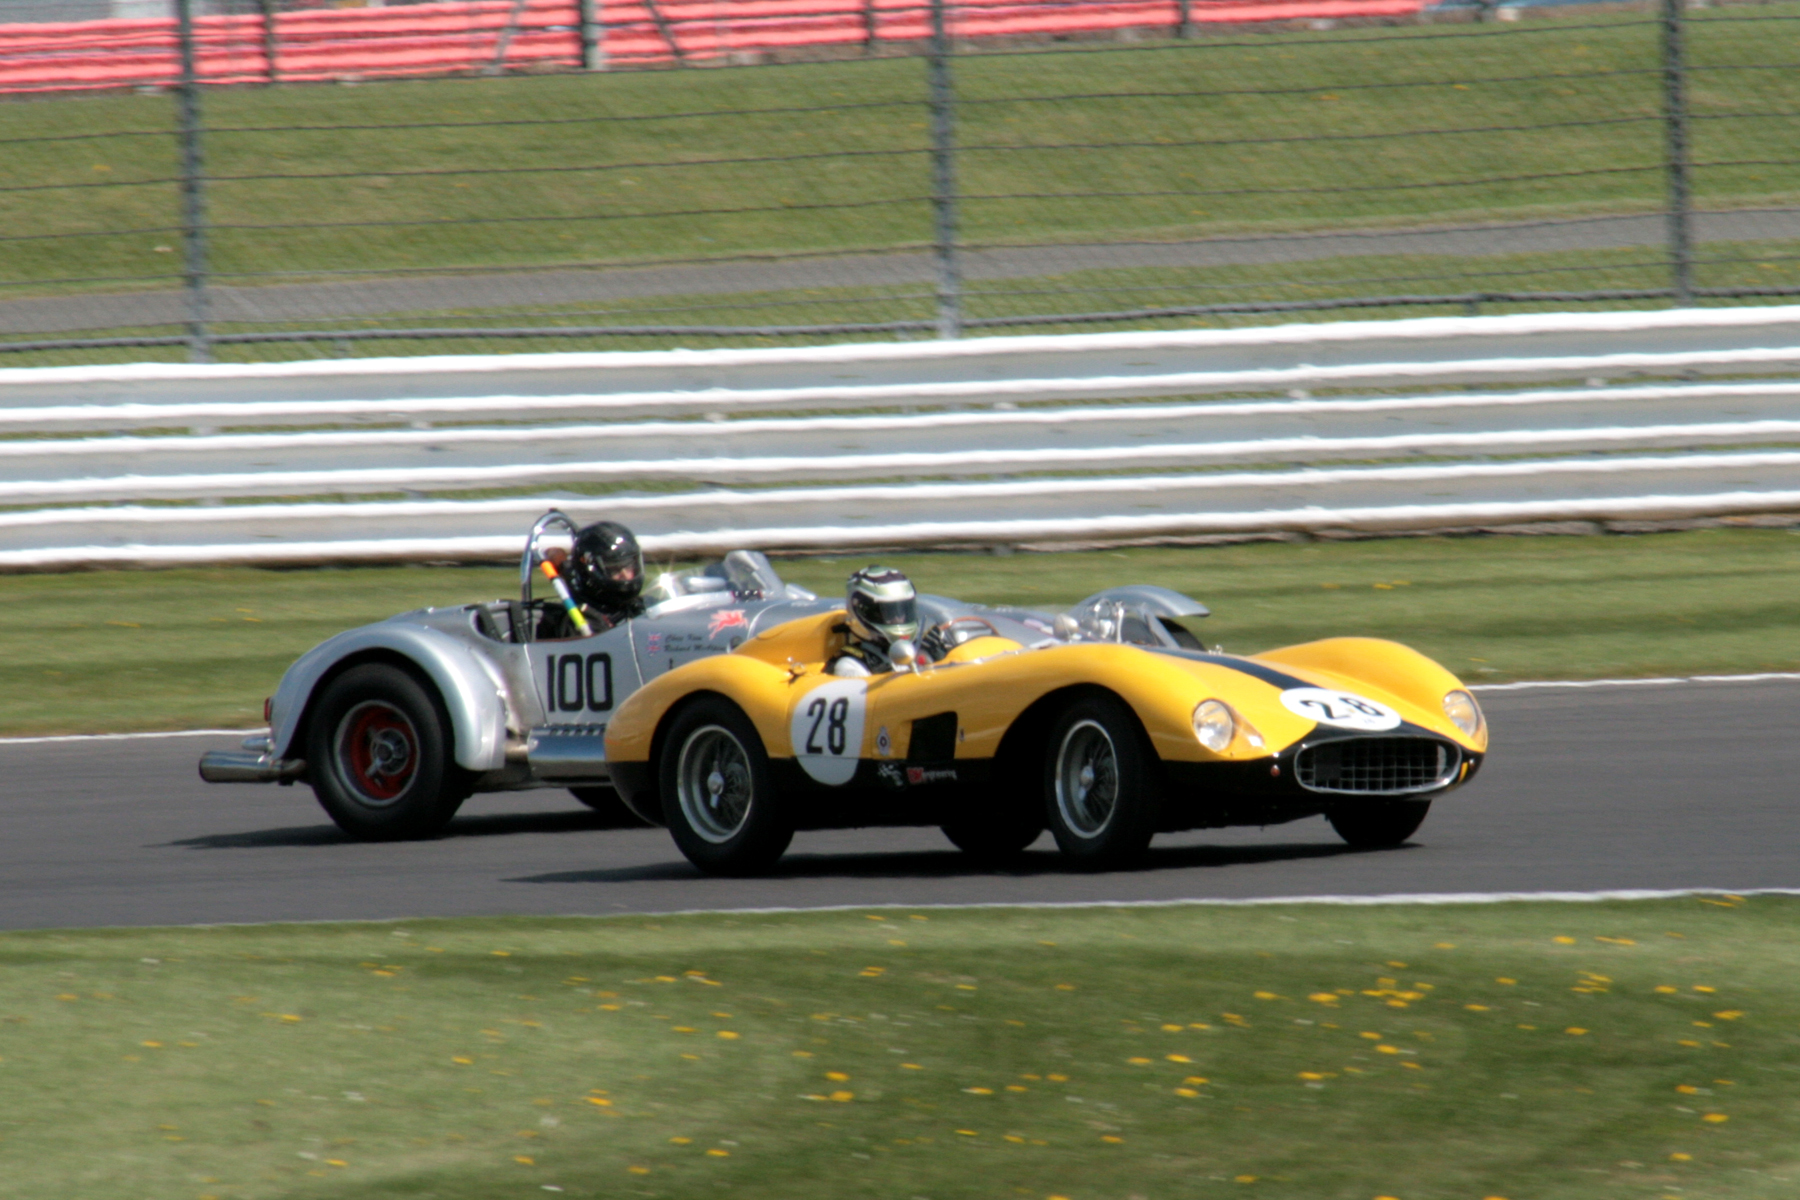 James Cottingham hits the front in the Ferrari 500TRC whilst Chris Keen hangs on the outside in the Kurtis 500S as they head into Luffield for the first time.                                                                                                                                                   Photo - John Turner